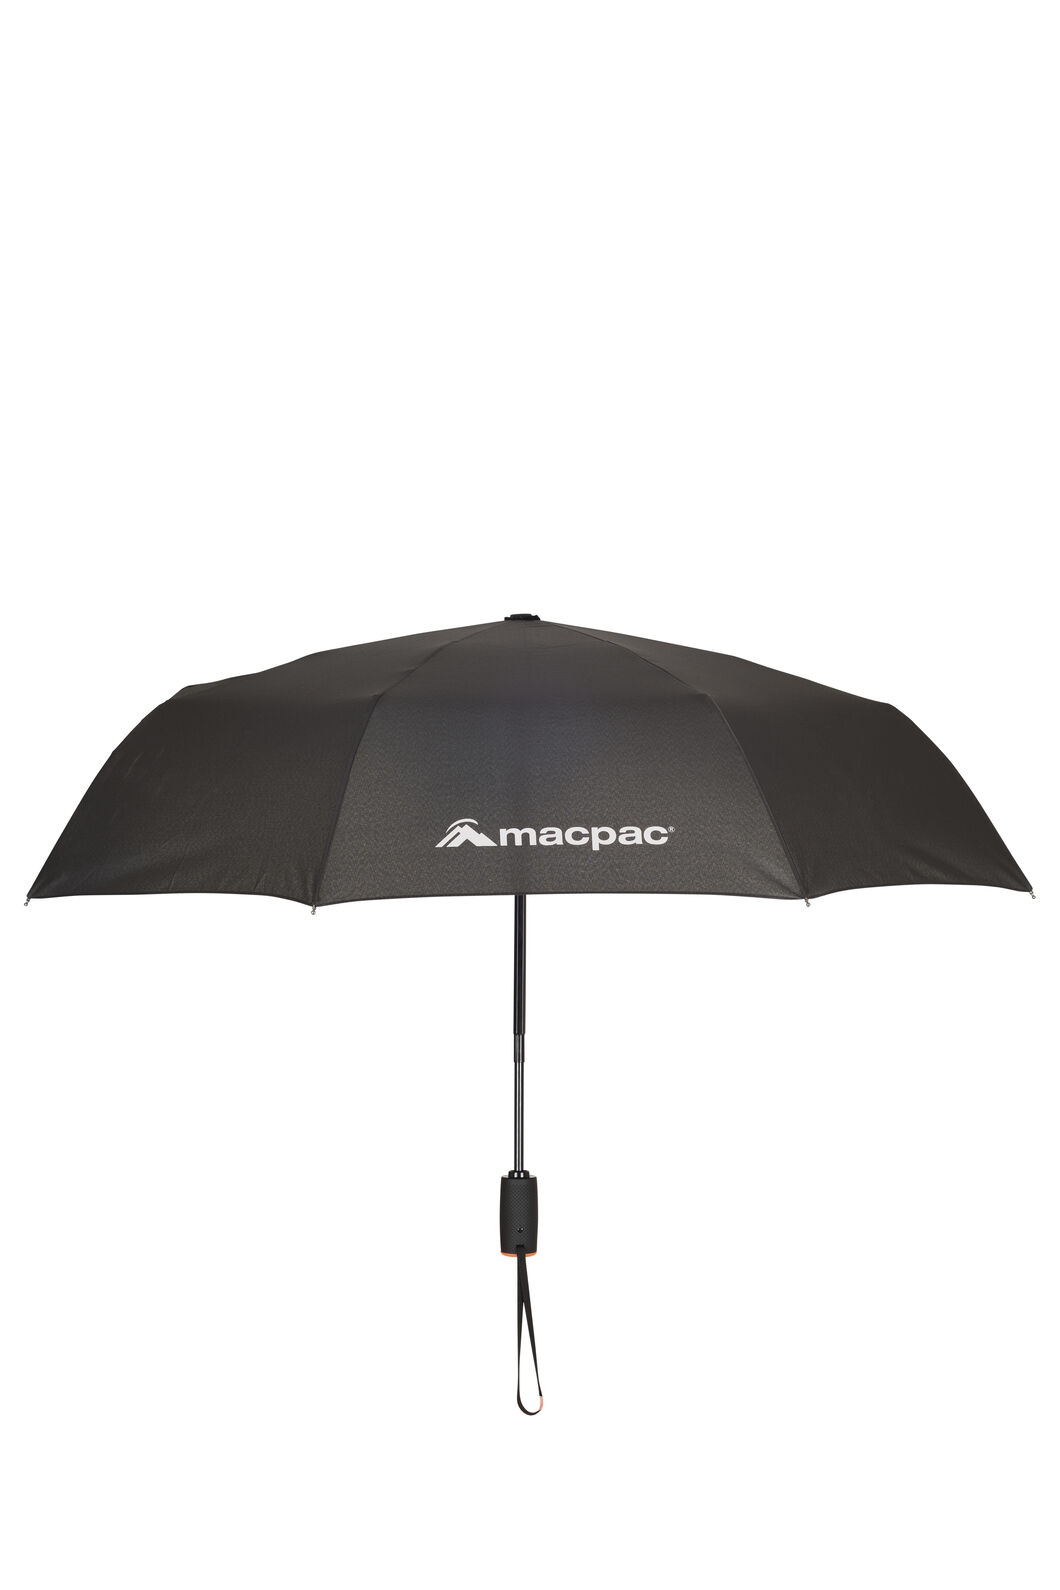 Macpac Travel Umbrella, Black, hi-res